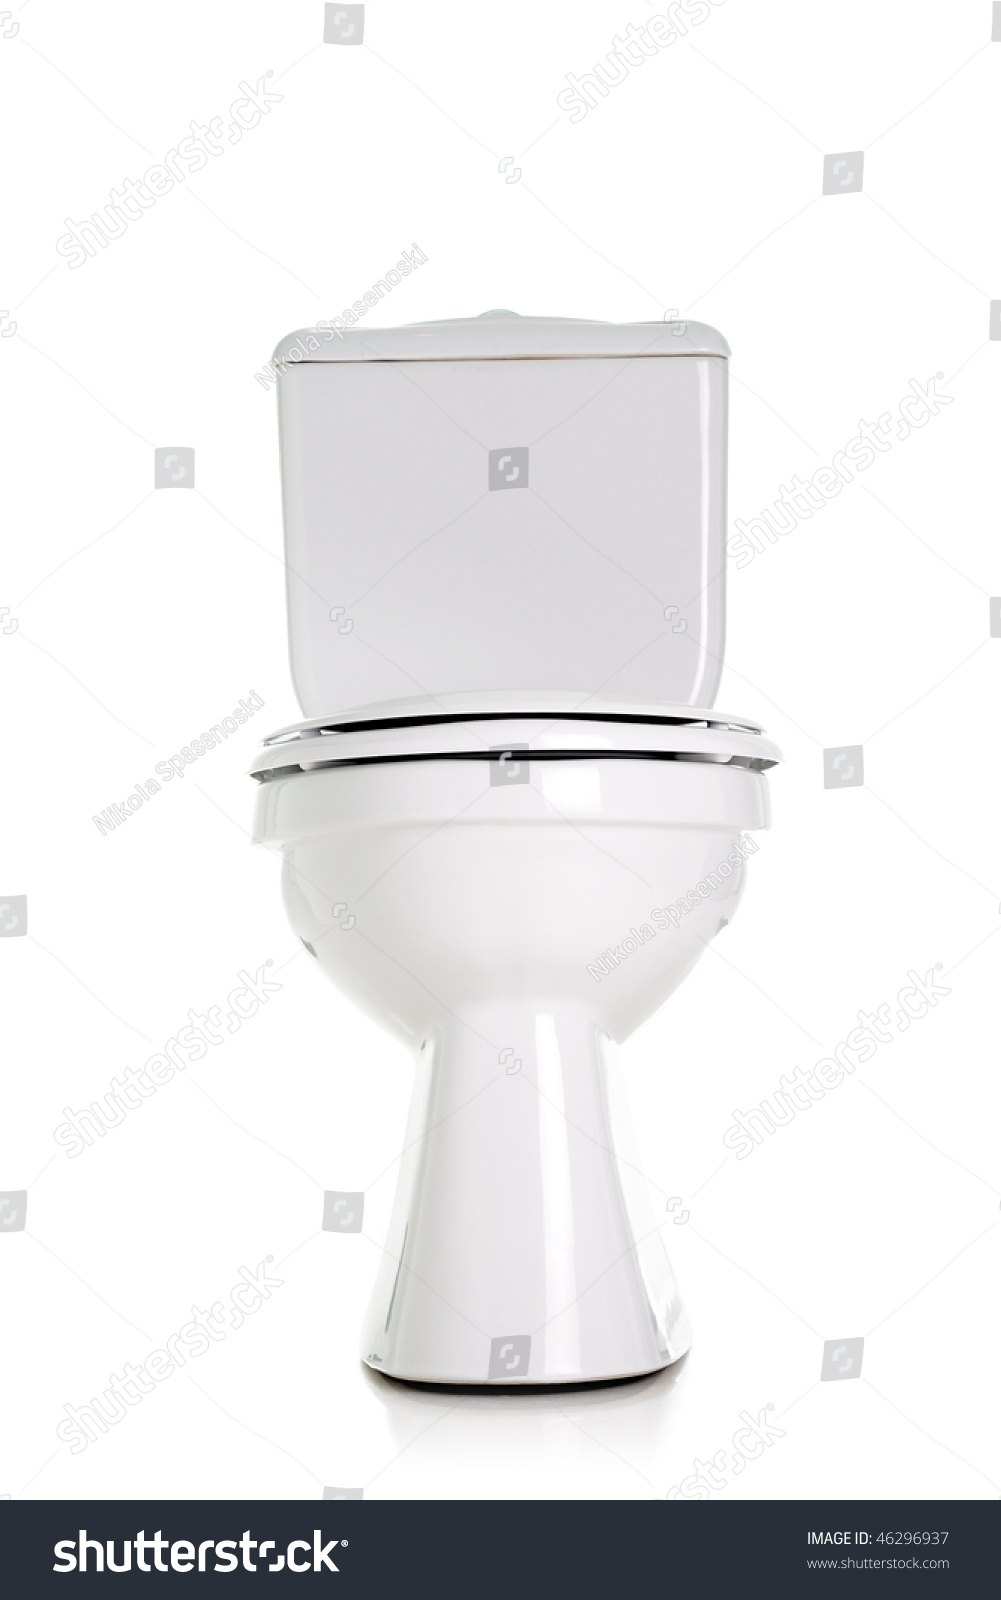 Smelly Toilet Bowl